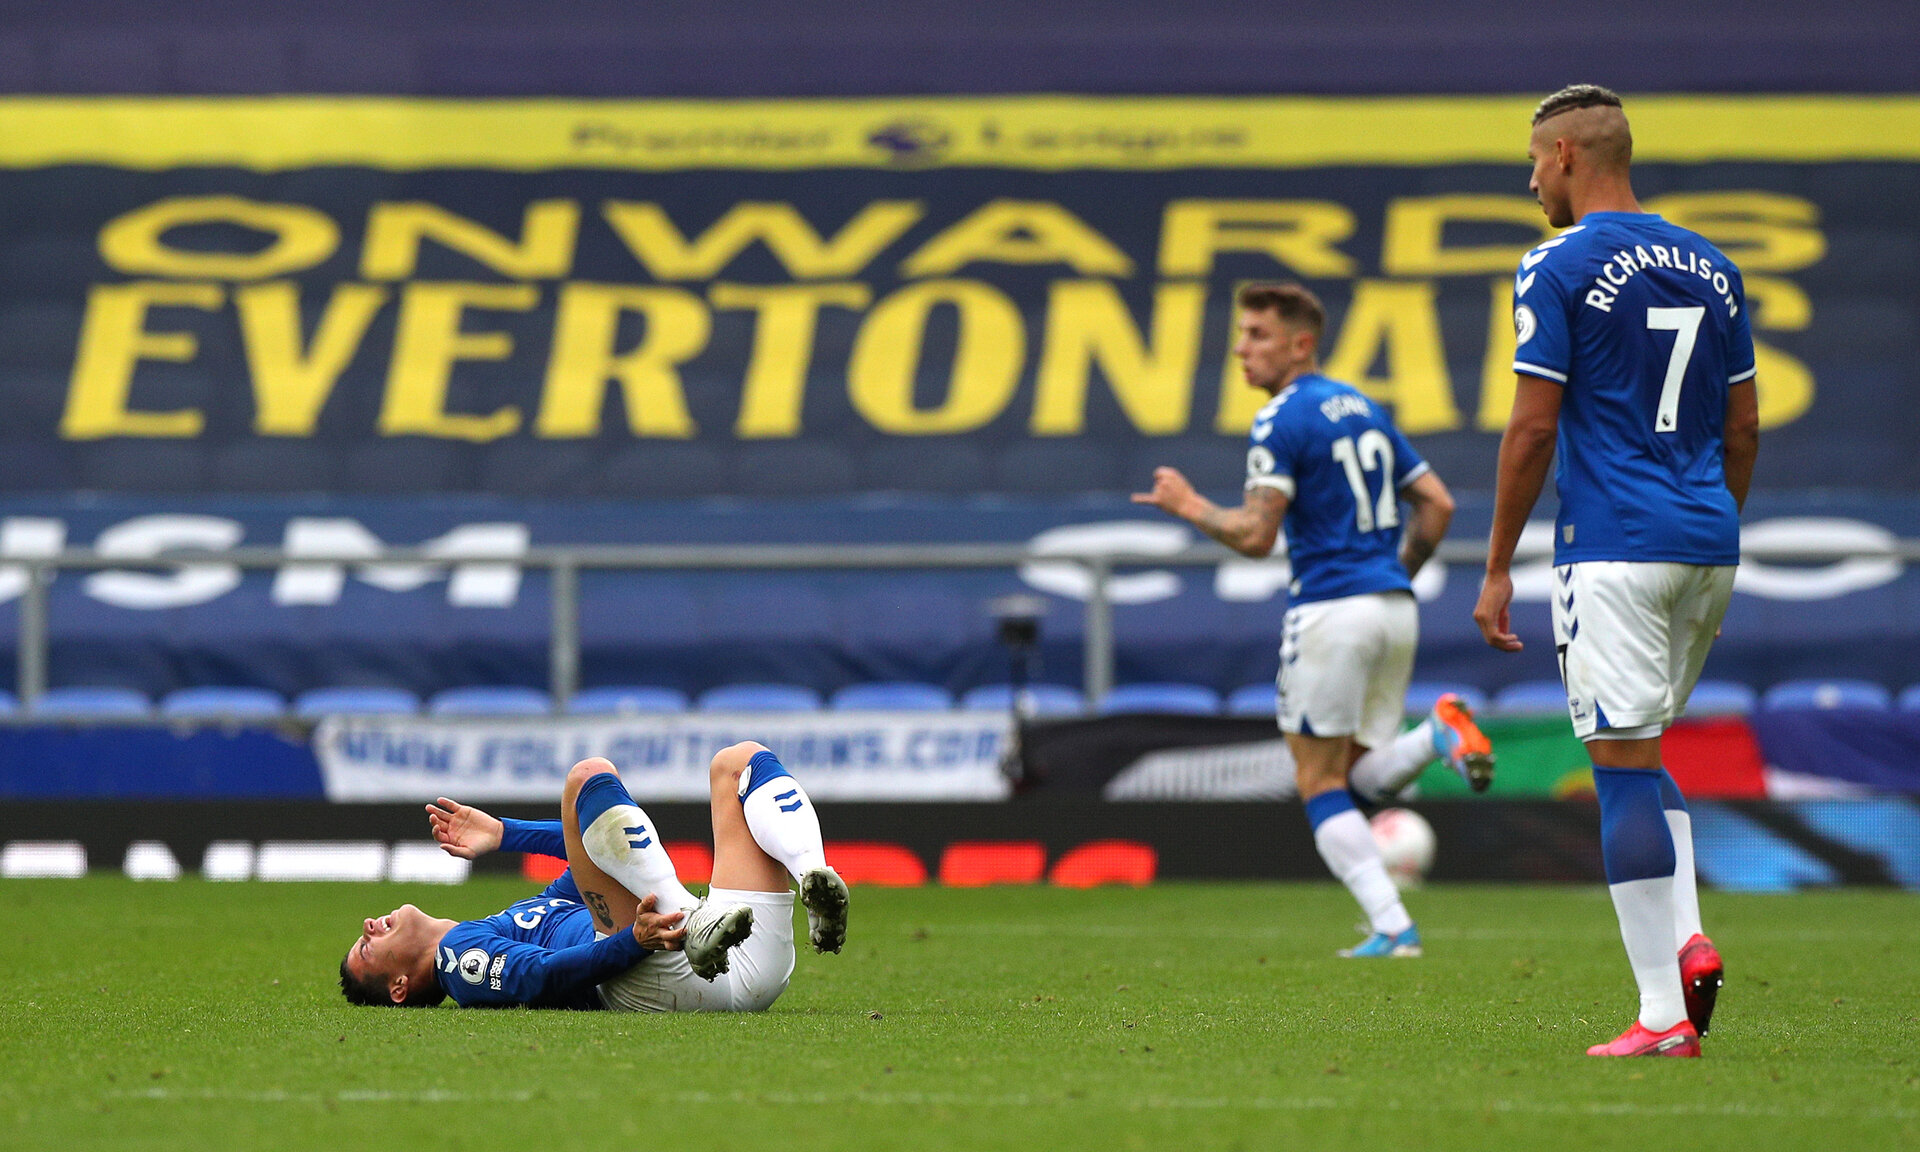 LIVERPOOL, ENGLAND - OCTOBER 17: James Rodriguez goes down injured during the Premier League match between Everton and Liverpool at Goodison Park on October 17, 2020 in Liverpool, England. Sporting stadiums around the UK remain under strict restrictions due to the Coronavirus Pandemic as Government social distancing laws prohibit fans inside venues resulting in games being played behind closed doors. (Photo by Peter Byrne - Pool/Getty Images)